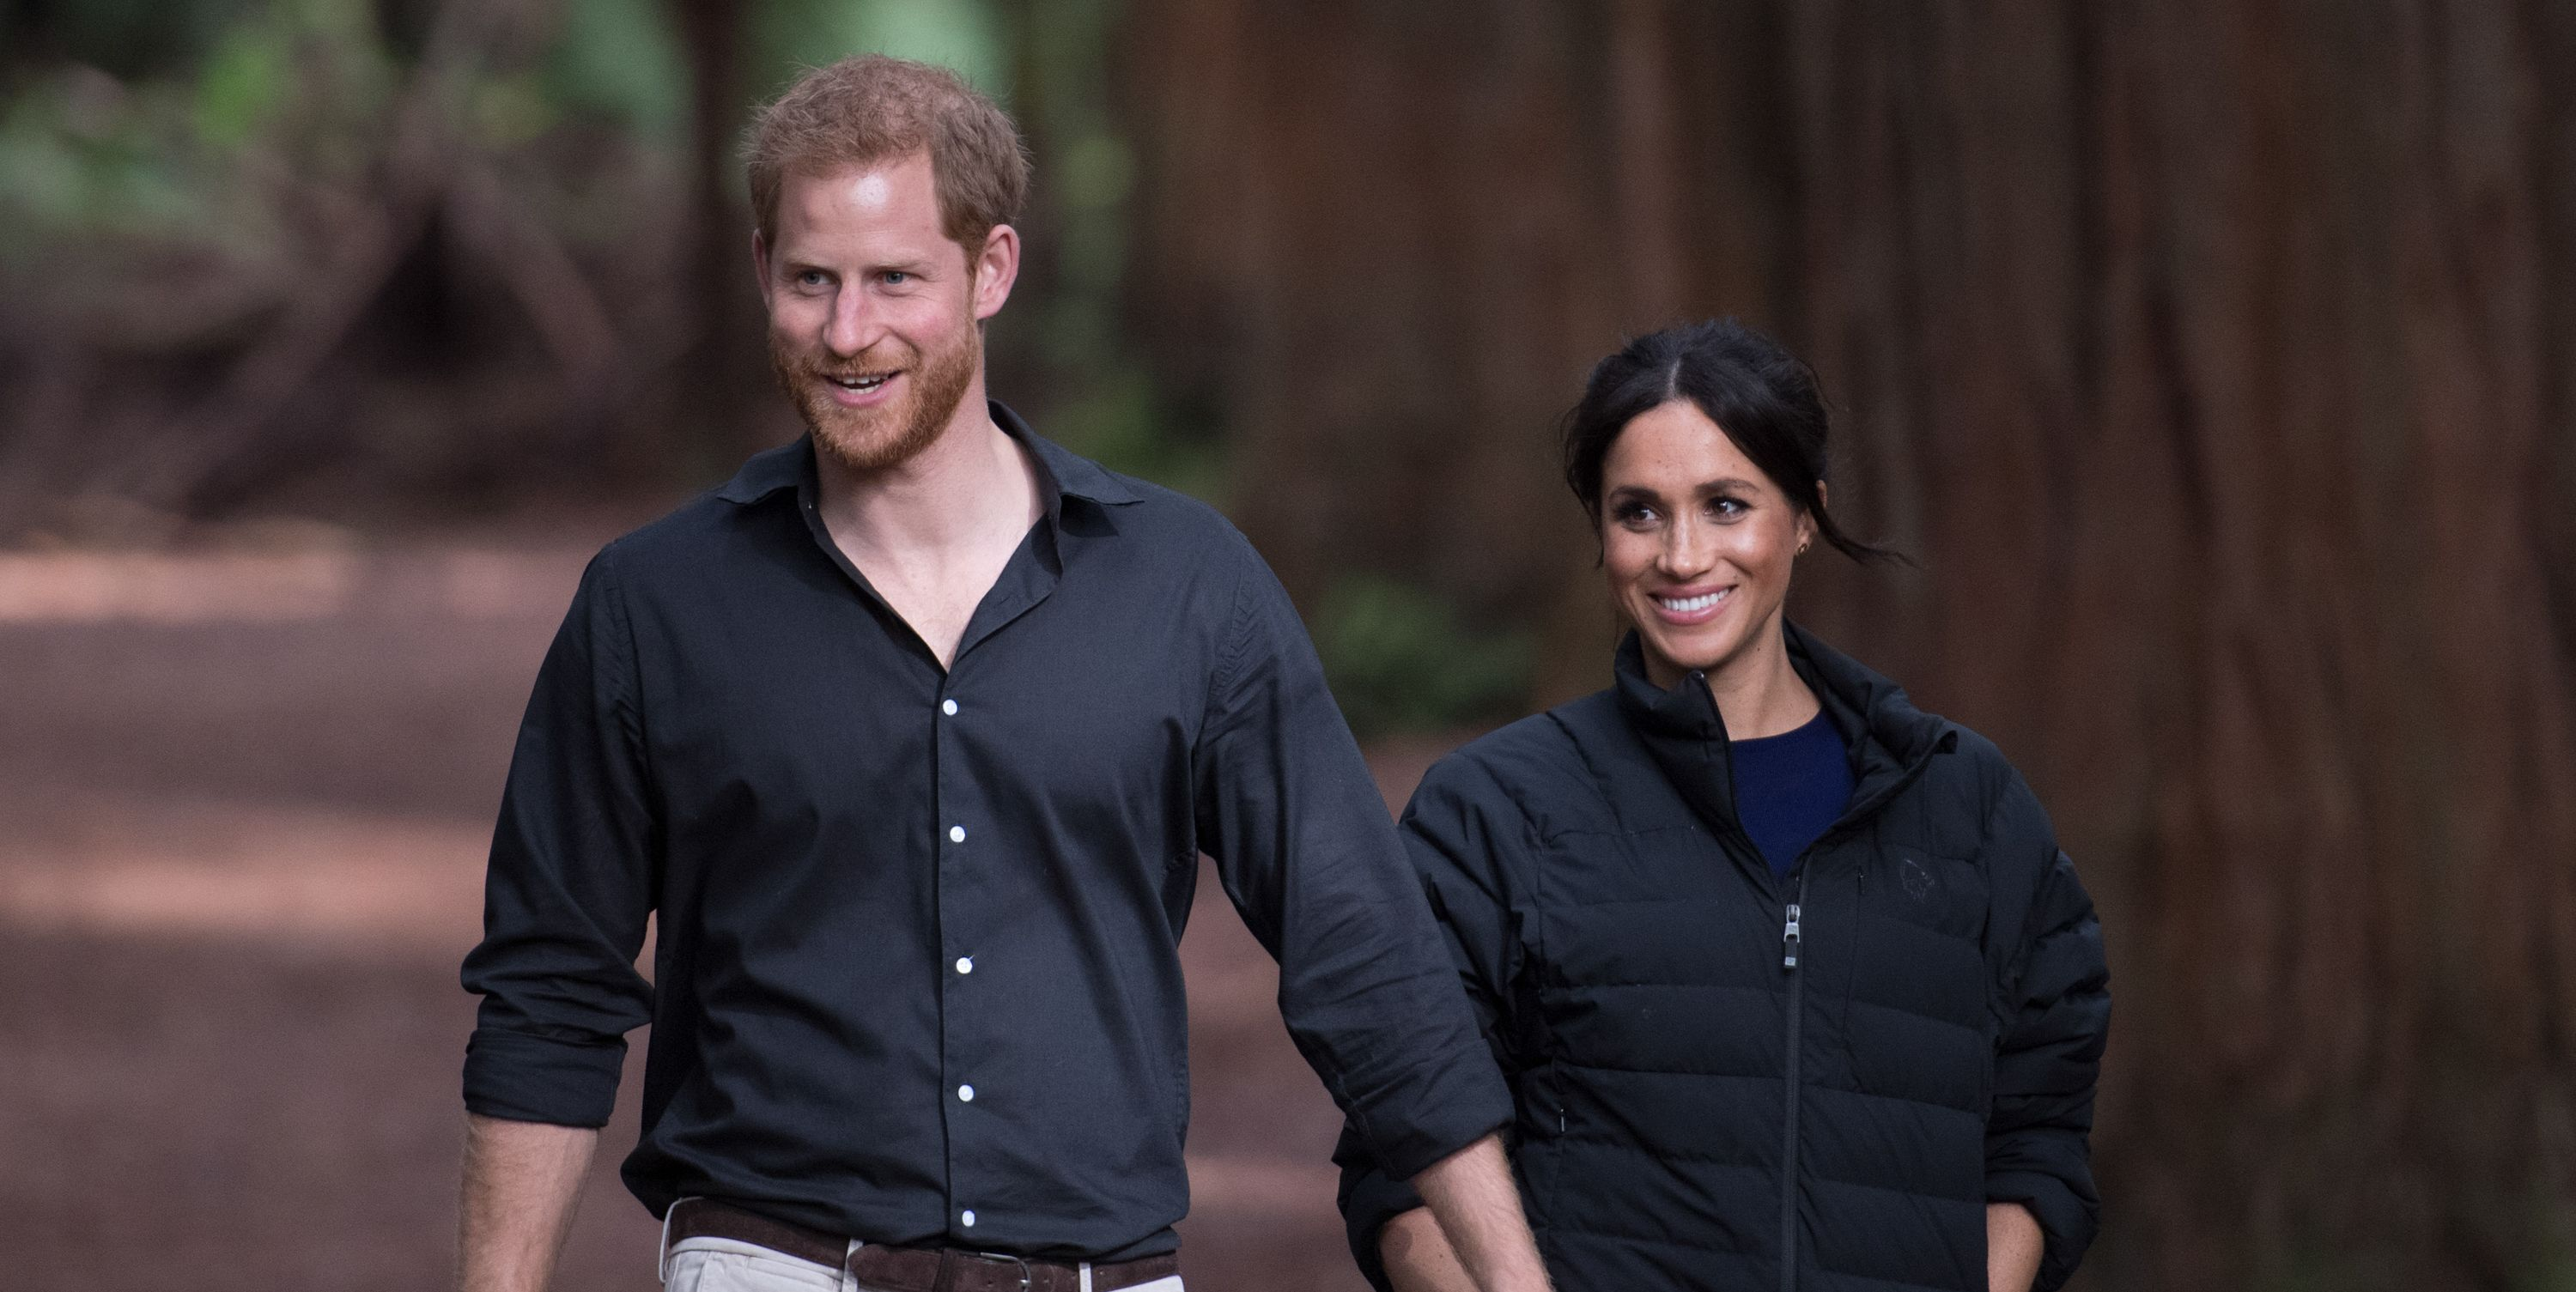 The Duke and Duchess of Sussex on Australia royal tour